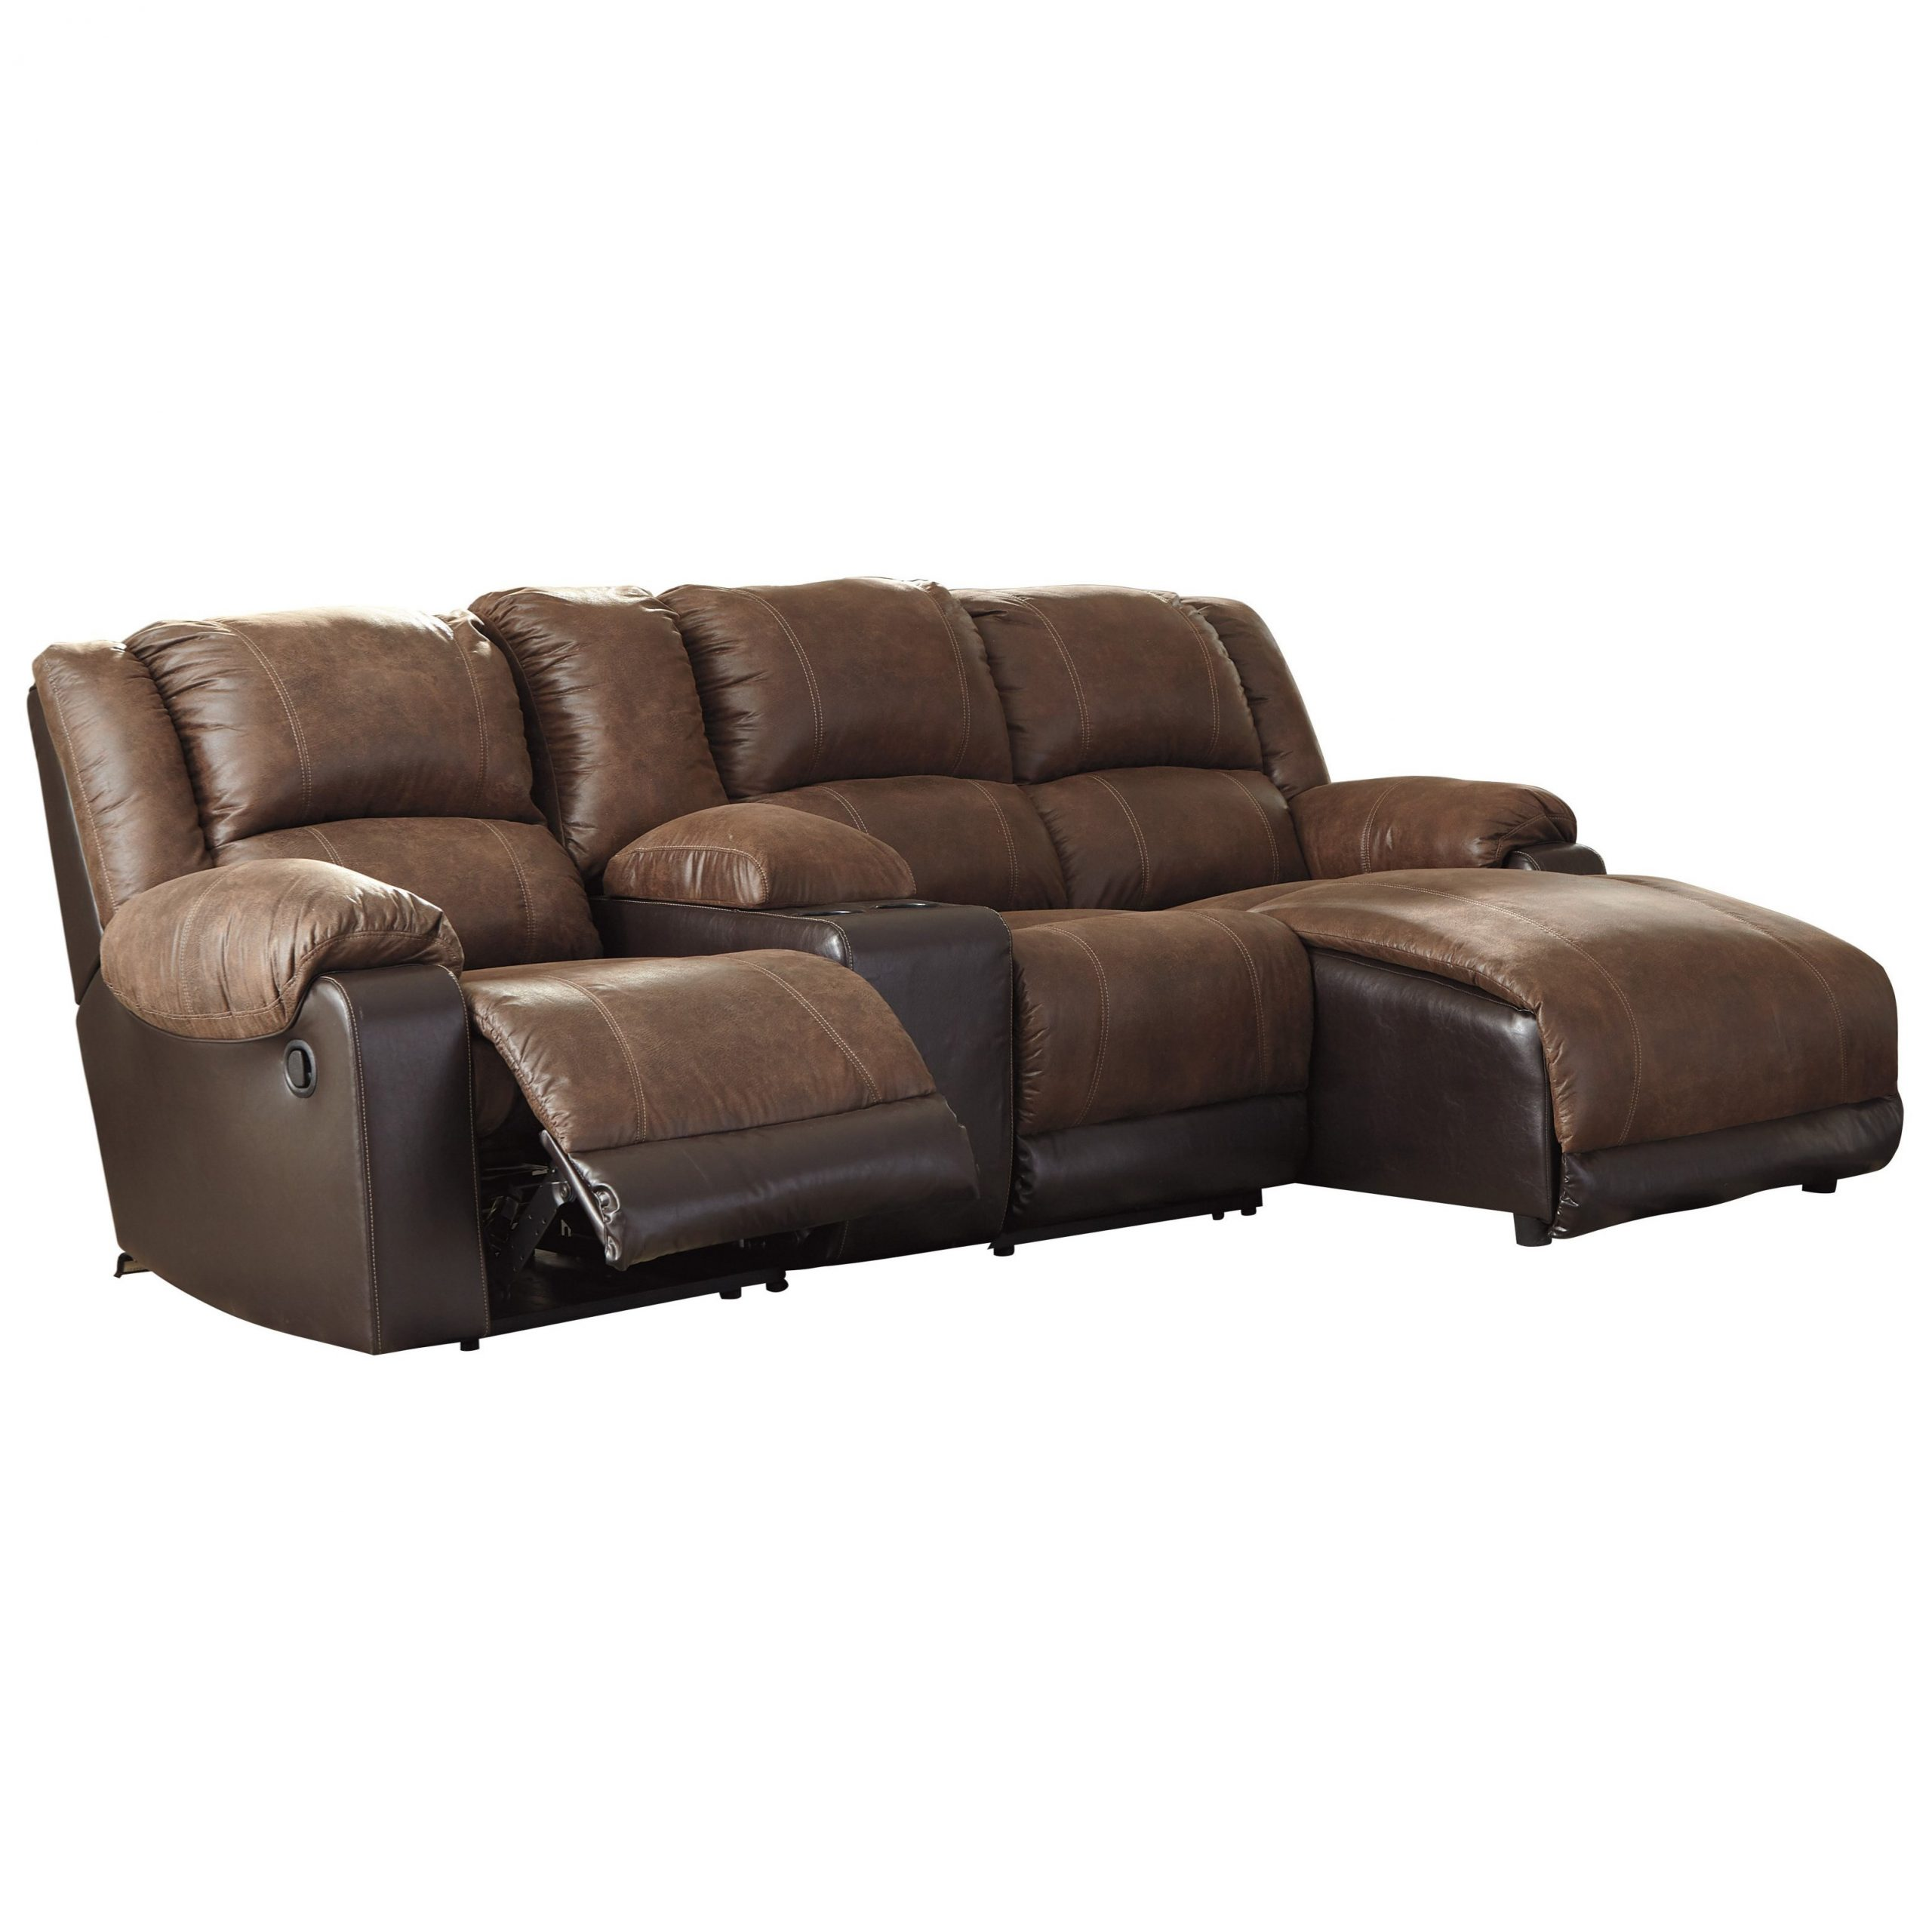 Celine Sectional Futon Sofas With Storage Reclining Couch Inside Well Known Signature Designashley Nantahala Reclining Chaise Sofa (View 6 of 25)